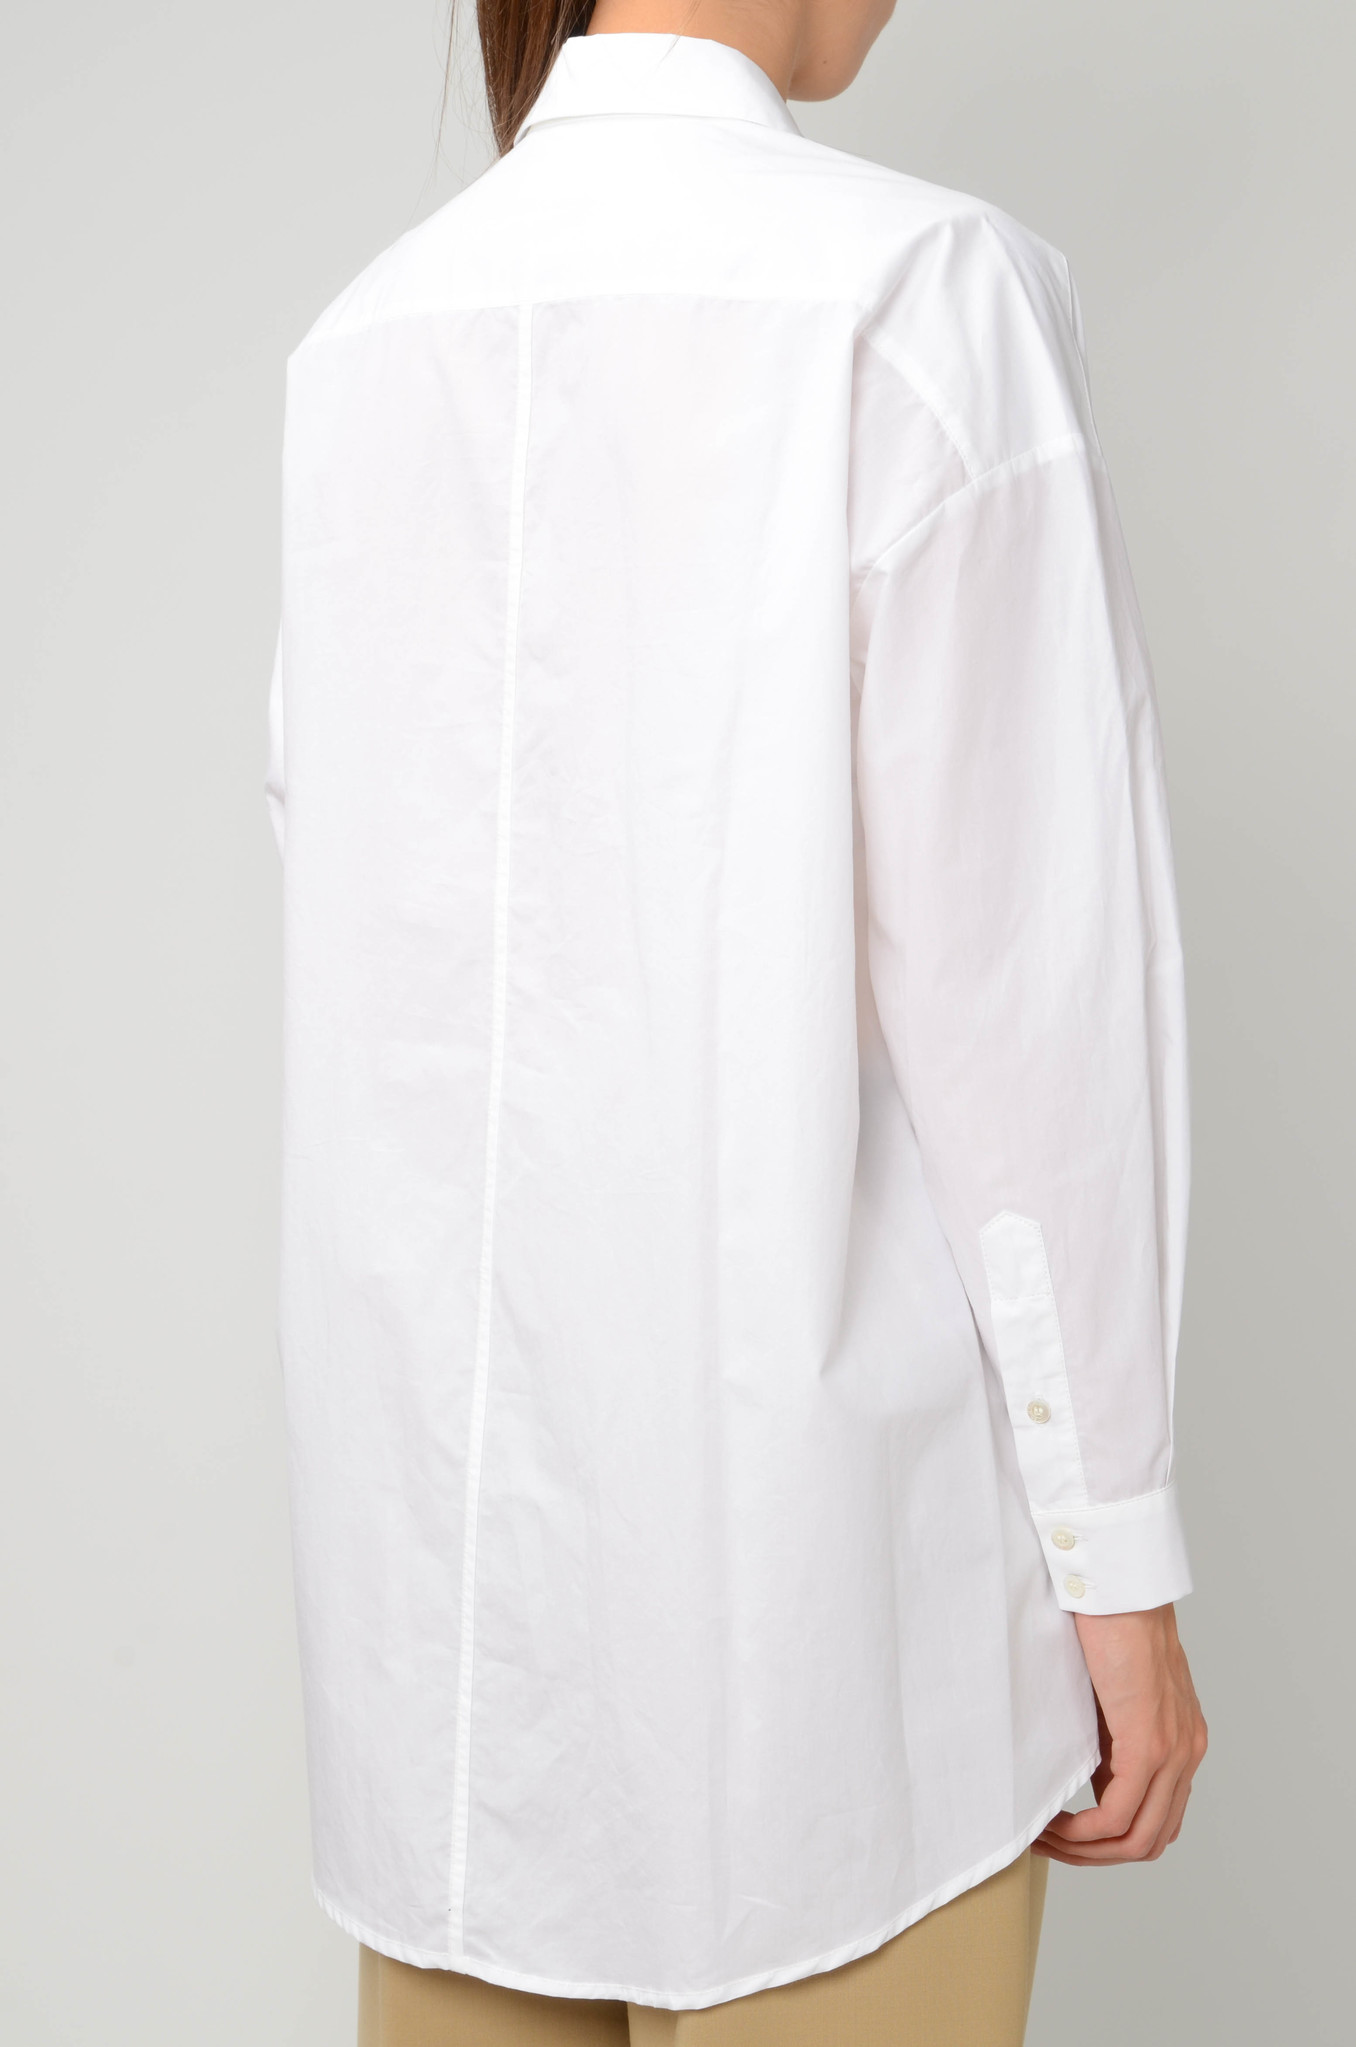 ESSENTIAL SHIRT IN WHITE-4